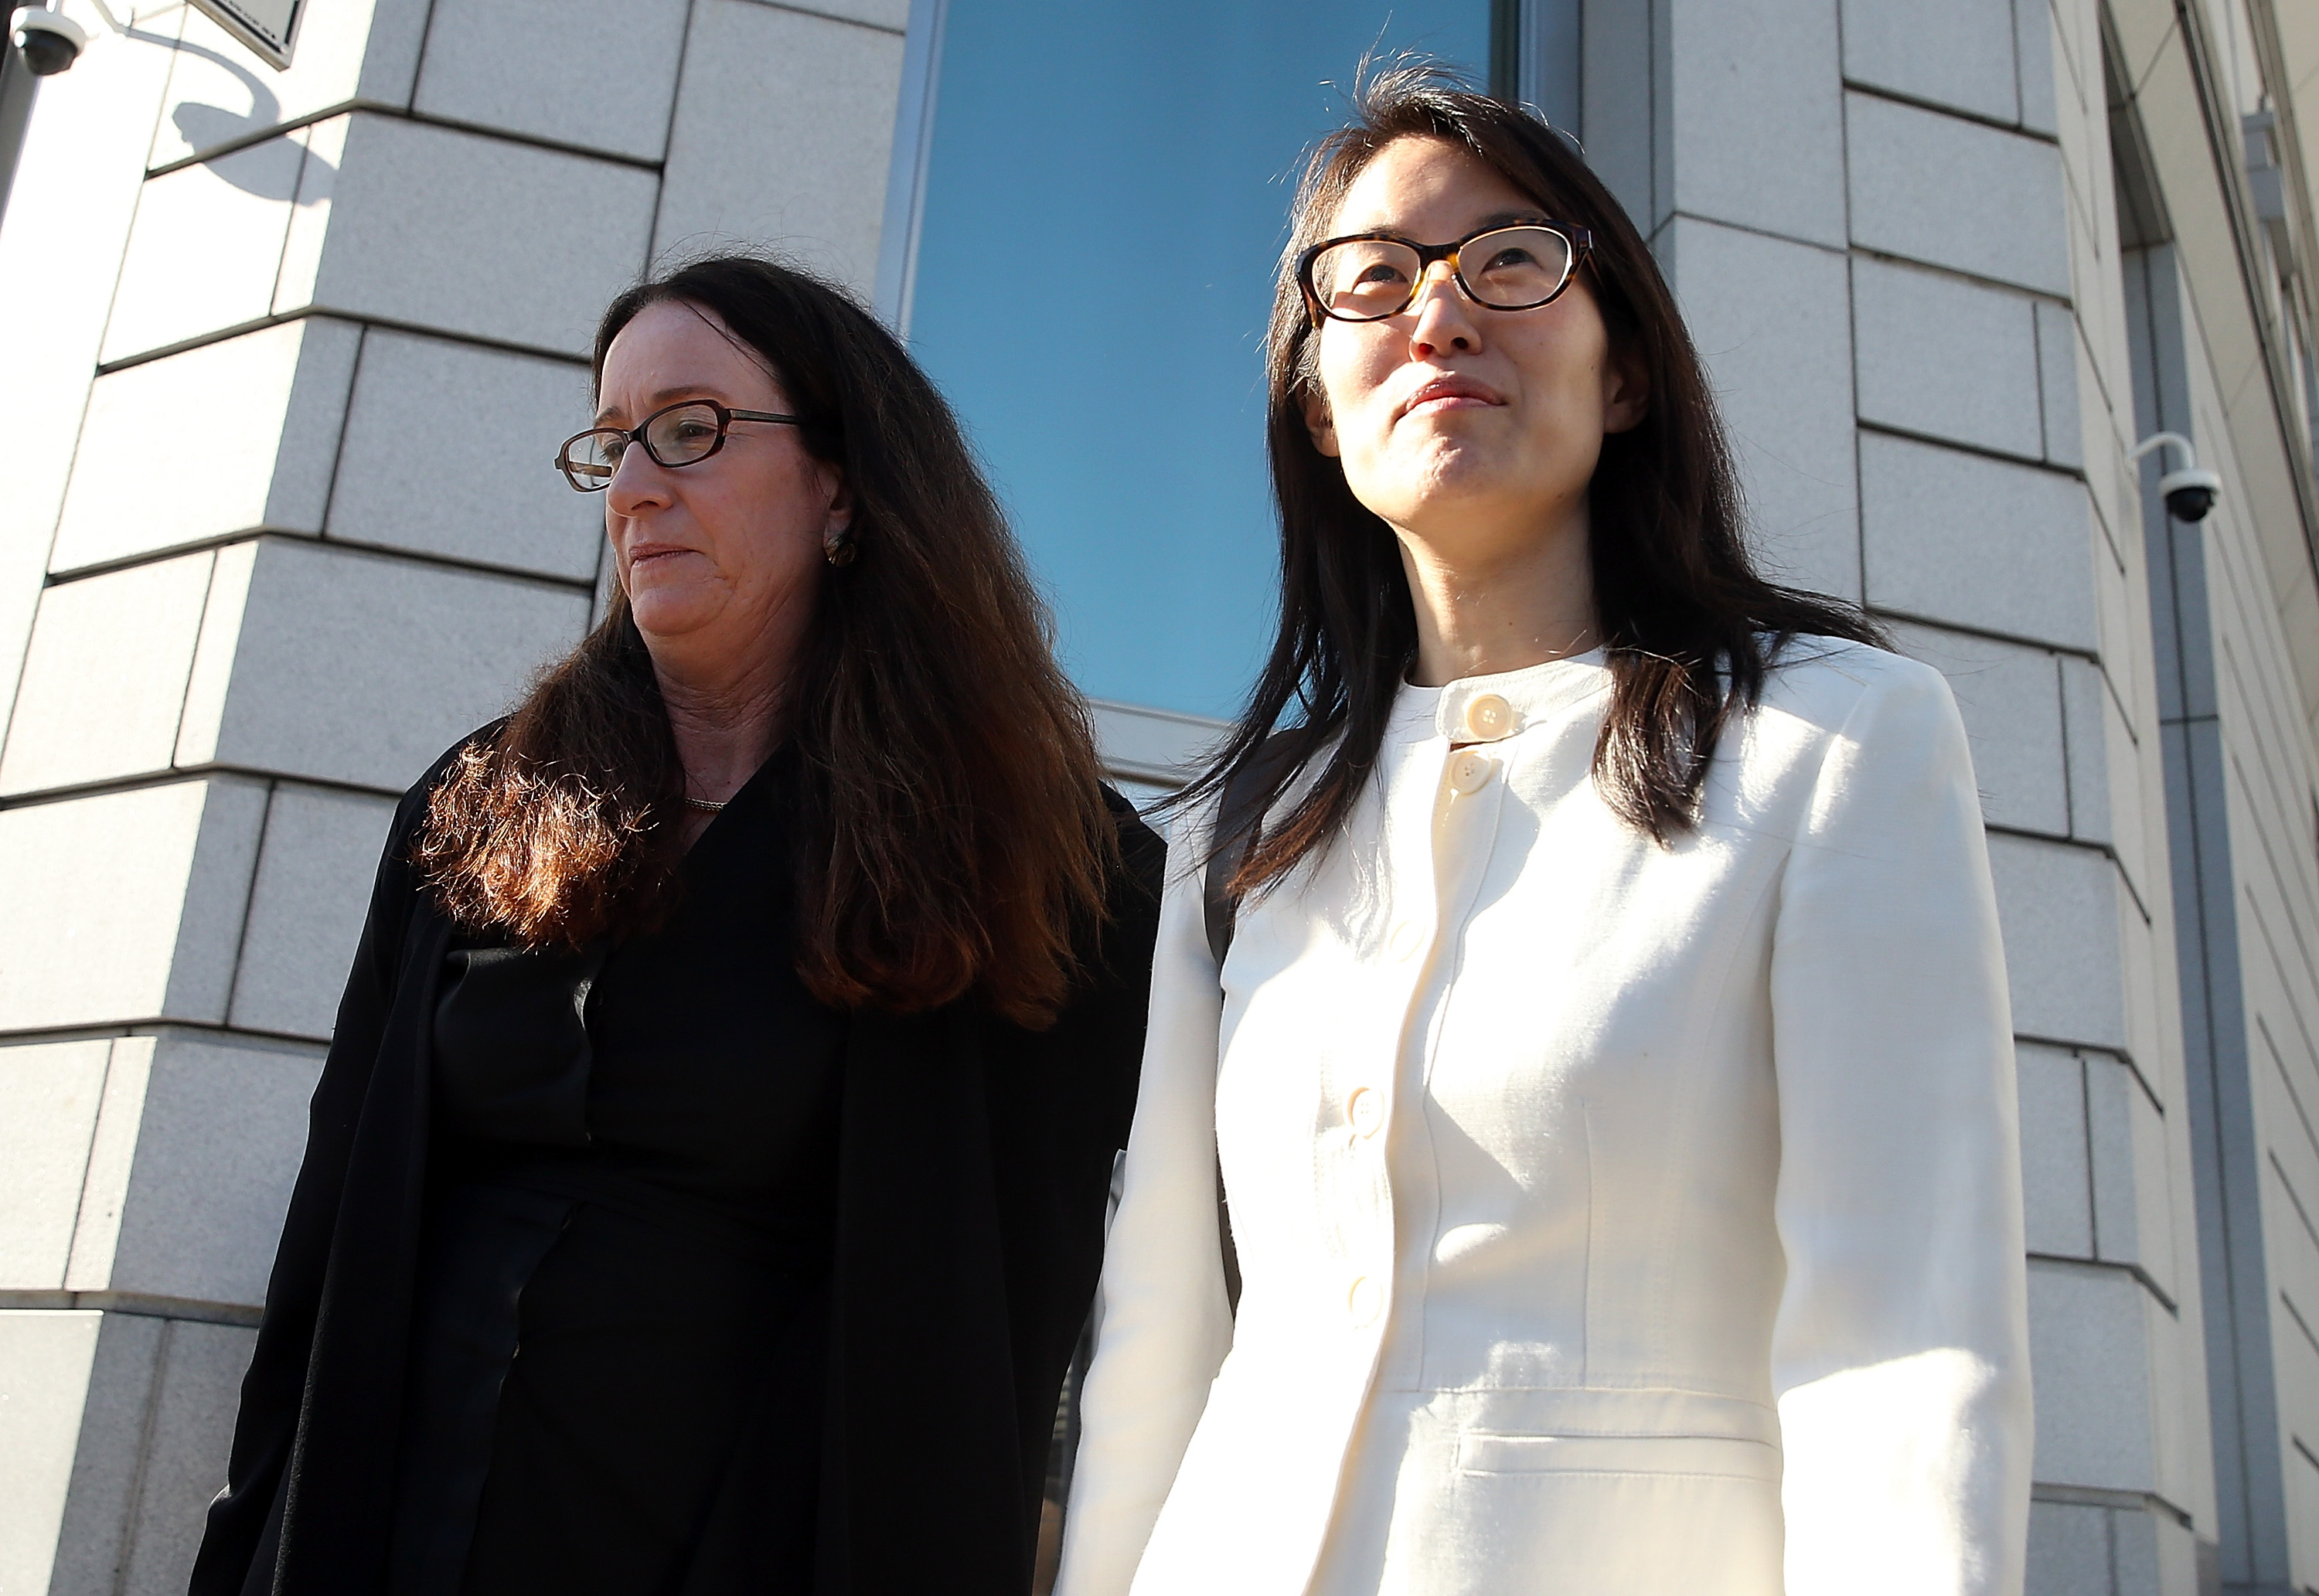 Ellen Pao, right, leaves the courthouse with attorney Therese Lawless after the jury ruled against Pao in a sexual-discrimination suit against storied venture capital firm Kleiner Perkins.